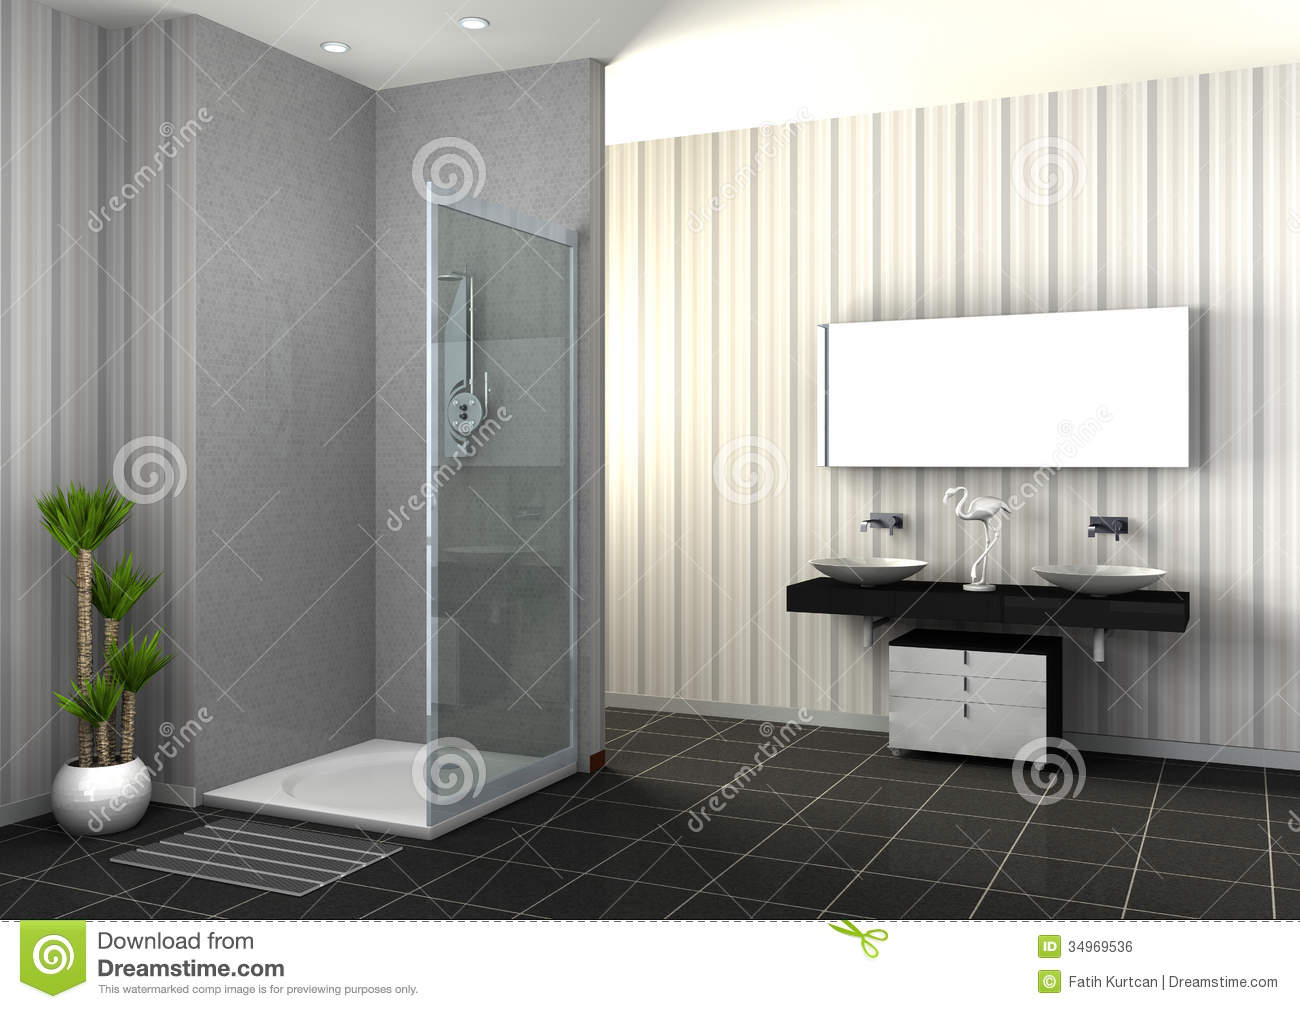 Douche de plain-pied illustration stock. Illustration du ...